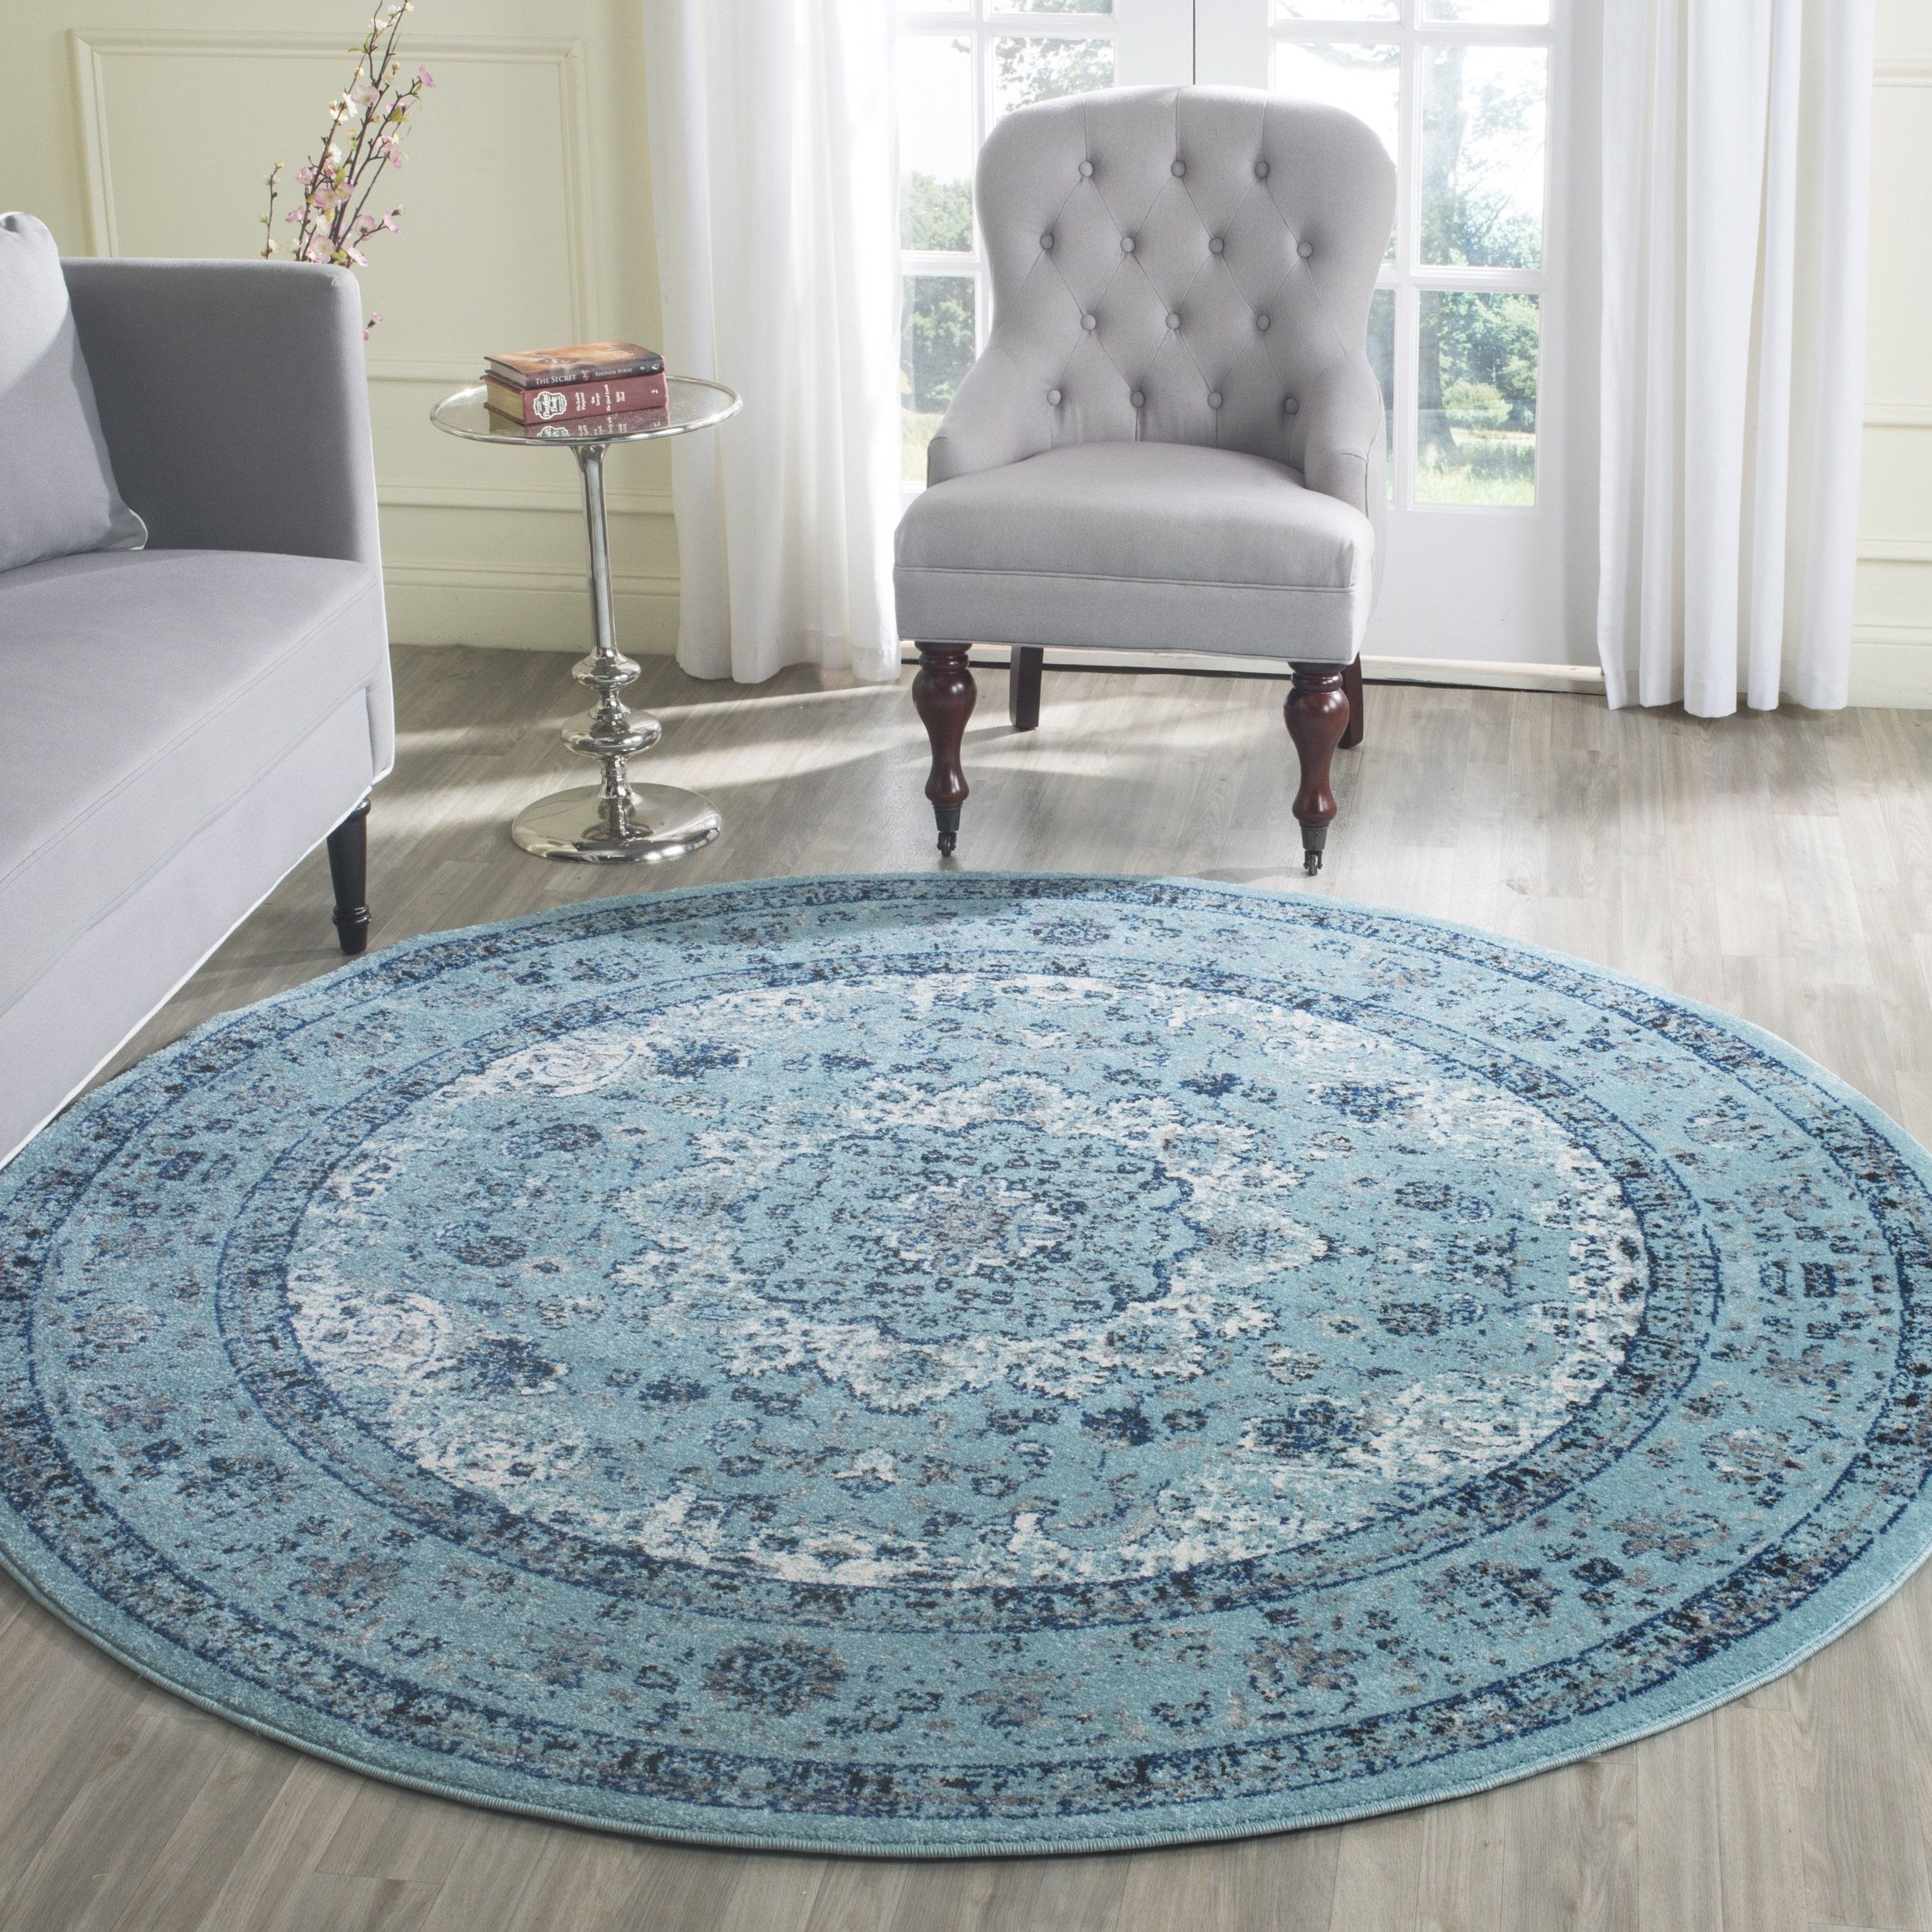 Round Oval Big House Changes Blue Area Rugs Light Blue Area